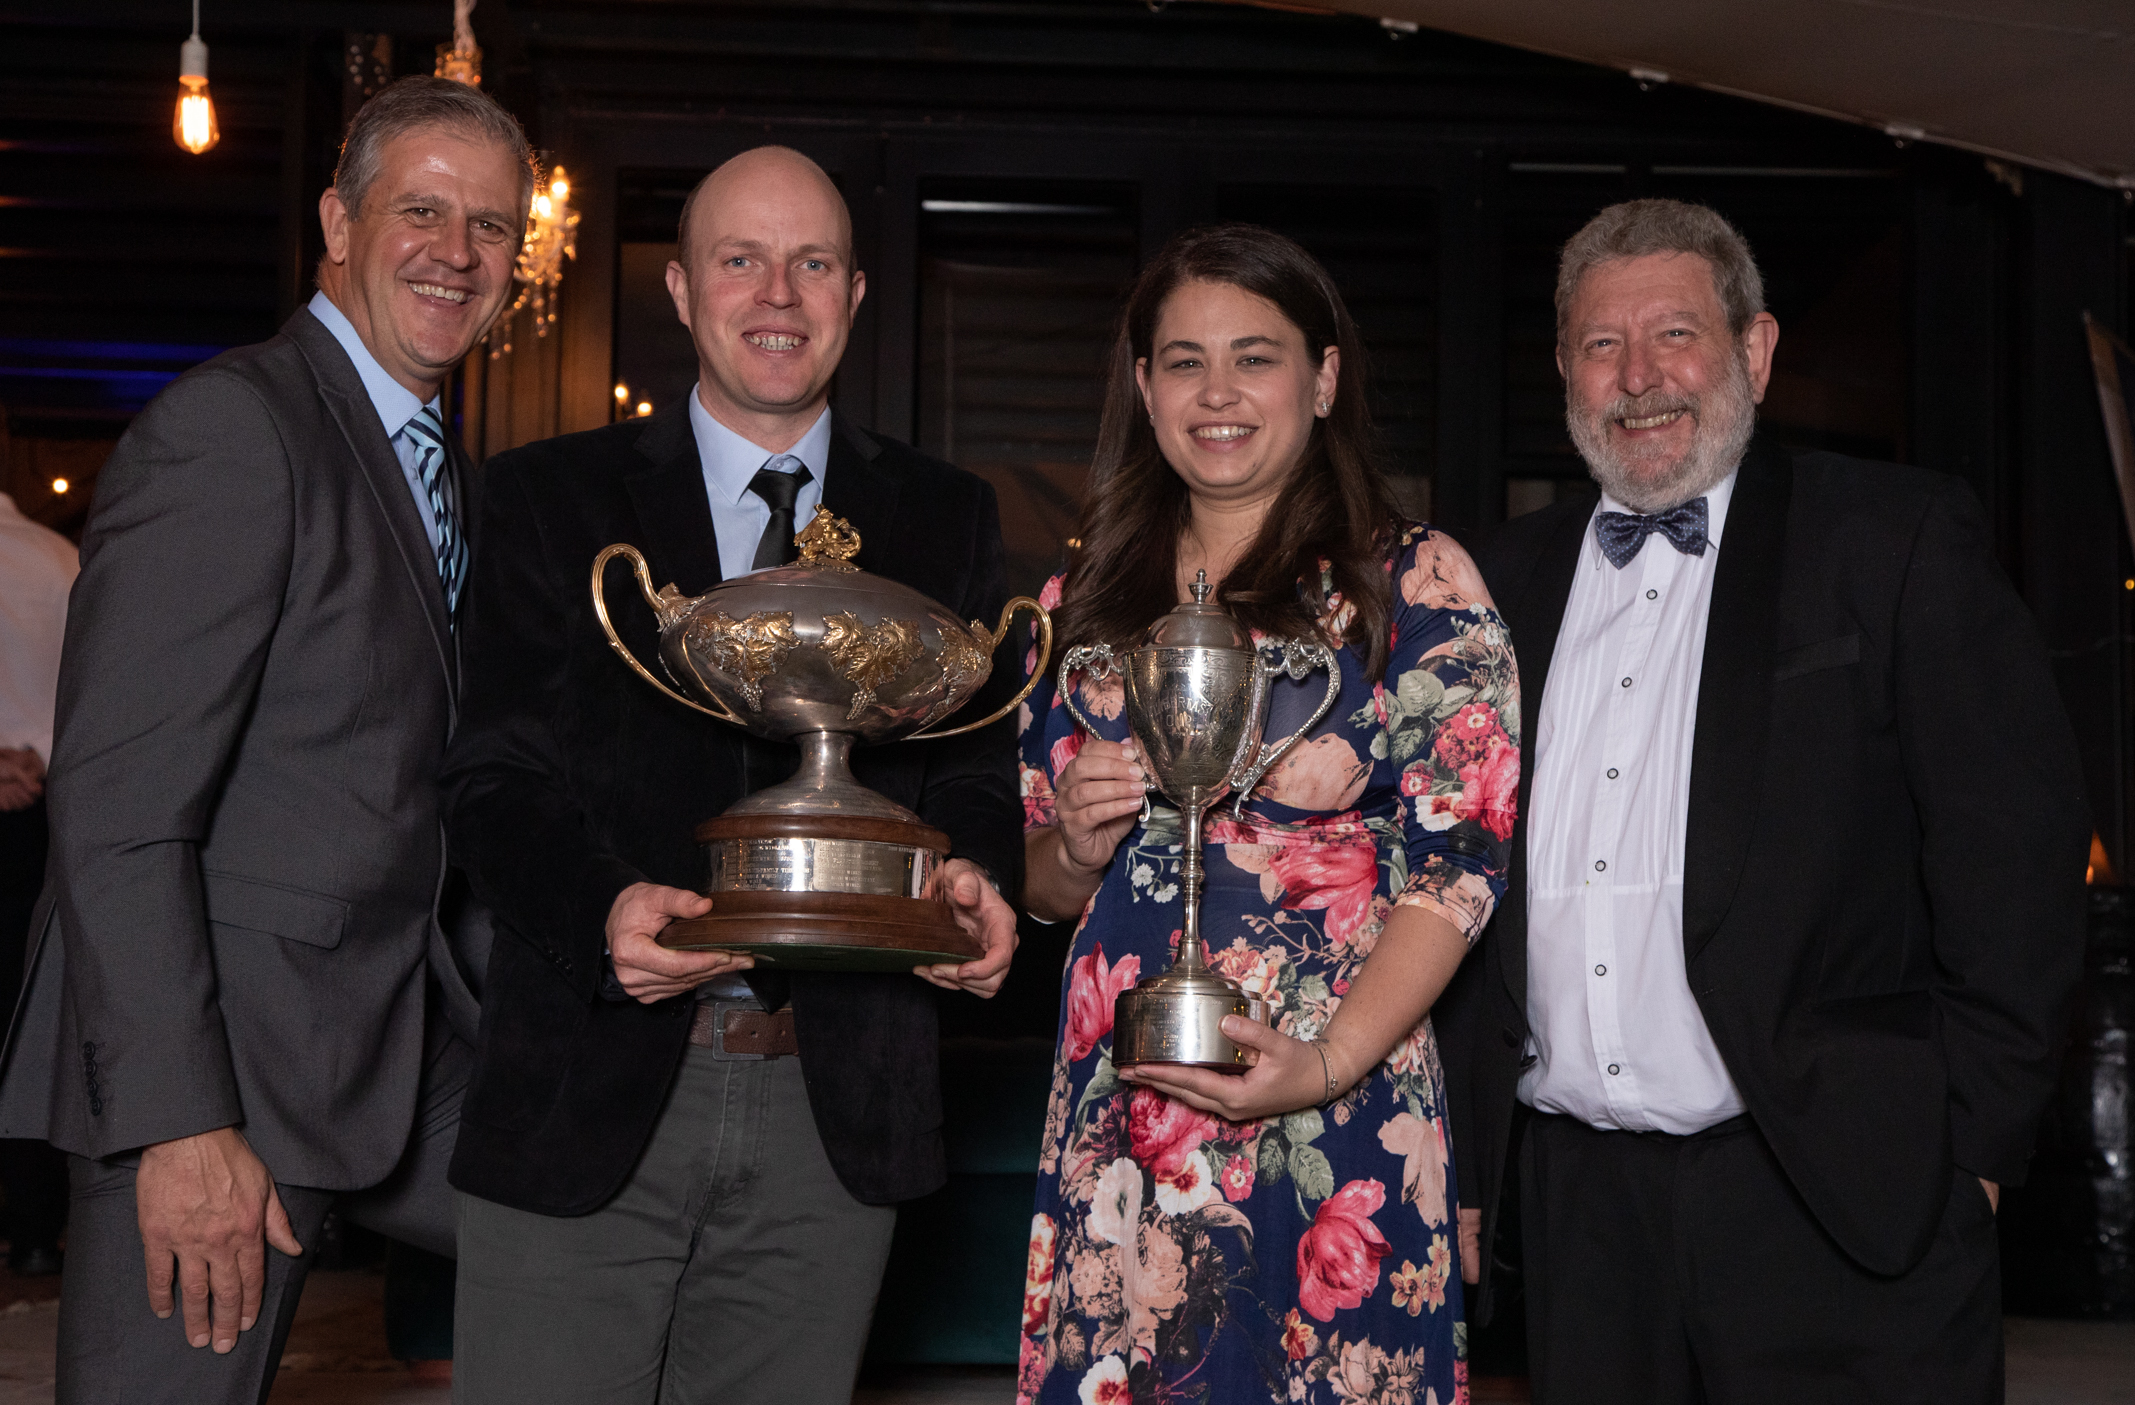 Benguela Cove Wine Estate wins best Cabernet Sauvignon and best Merlot at SA National Young Wine Show photo